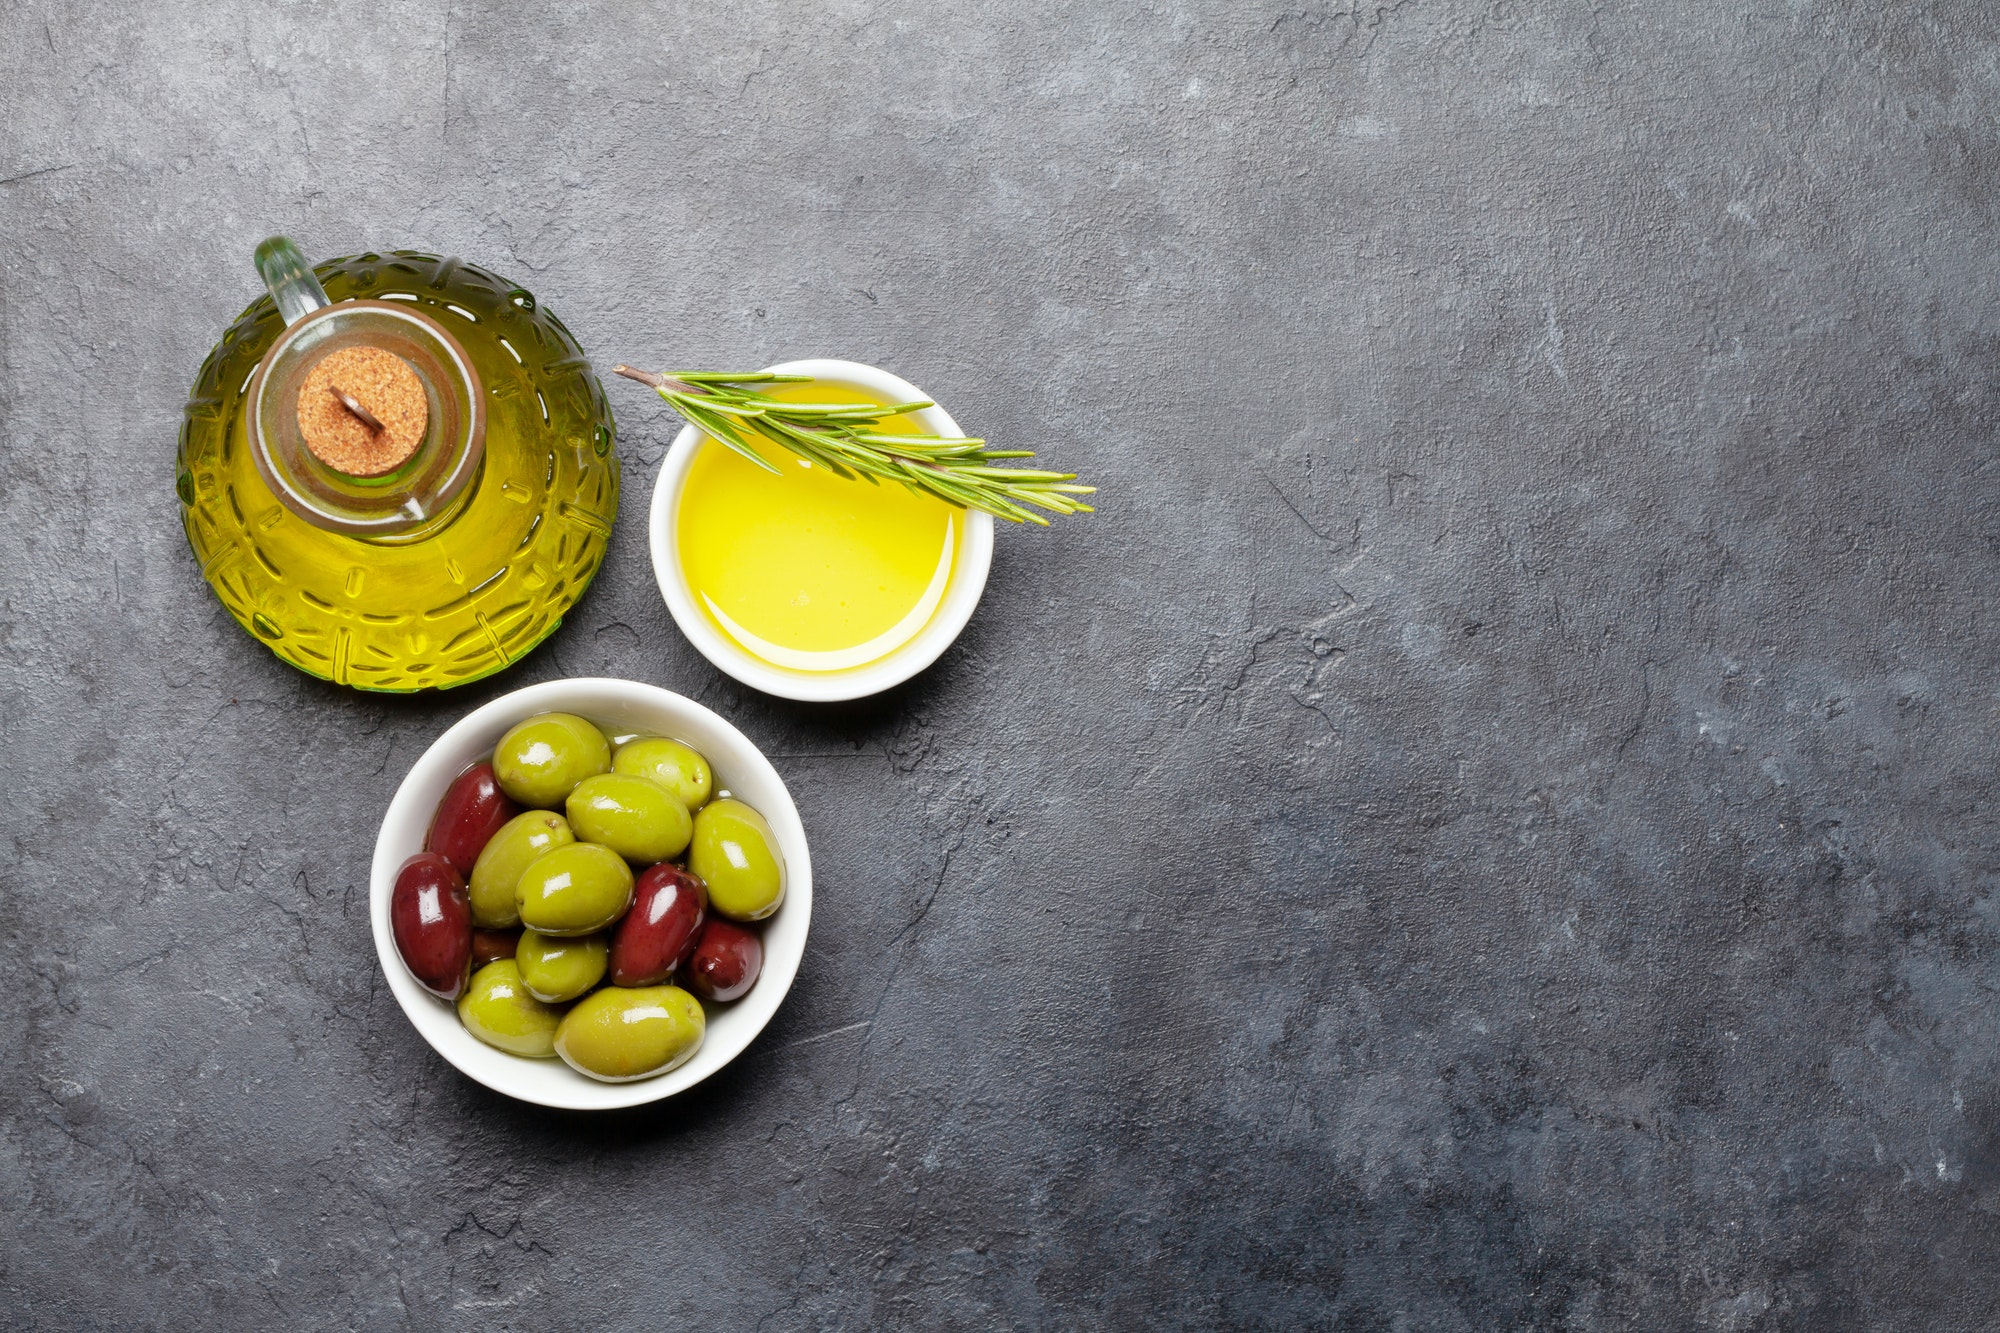 Ripe olives and olive oil